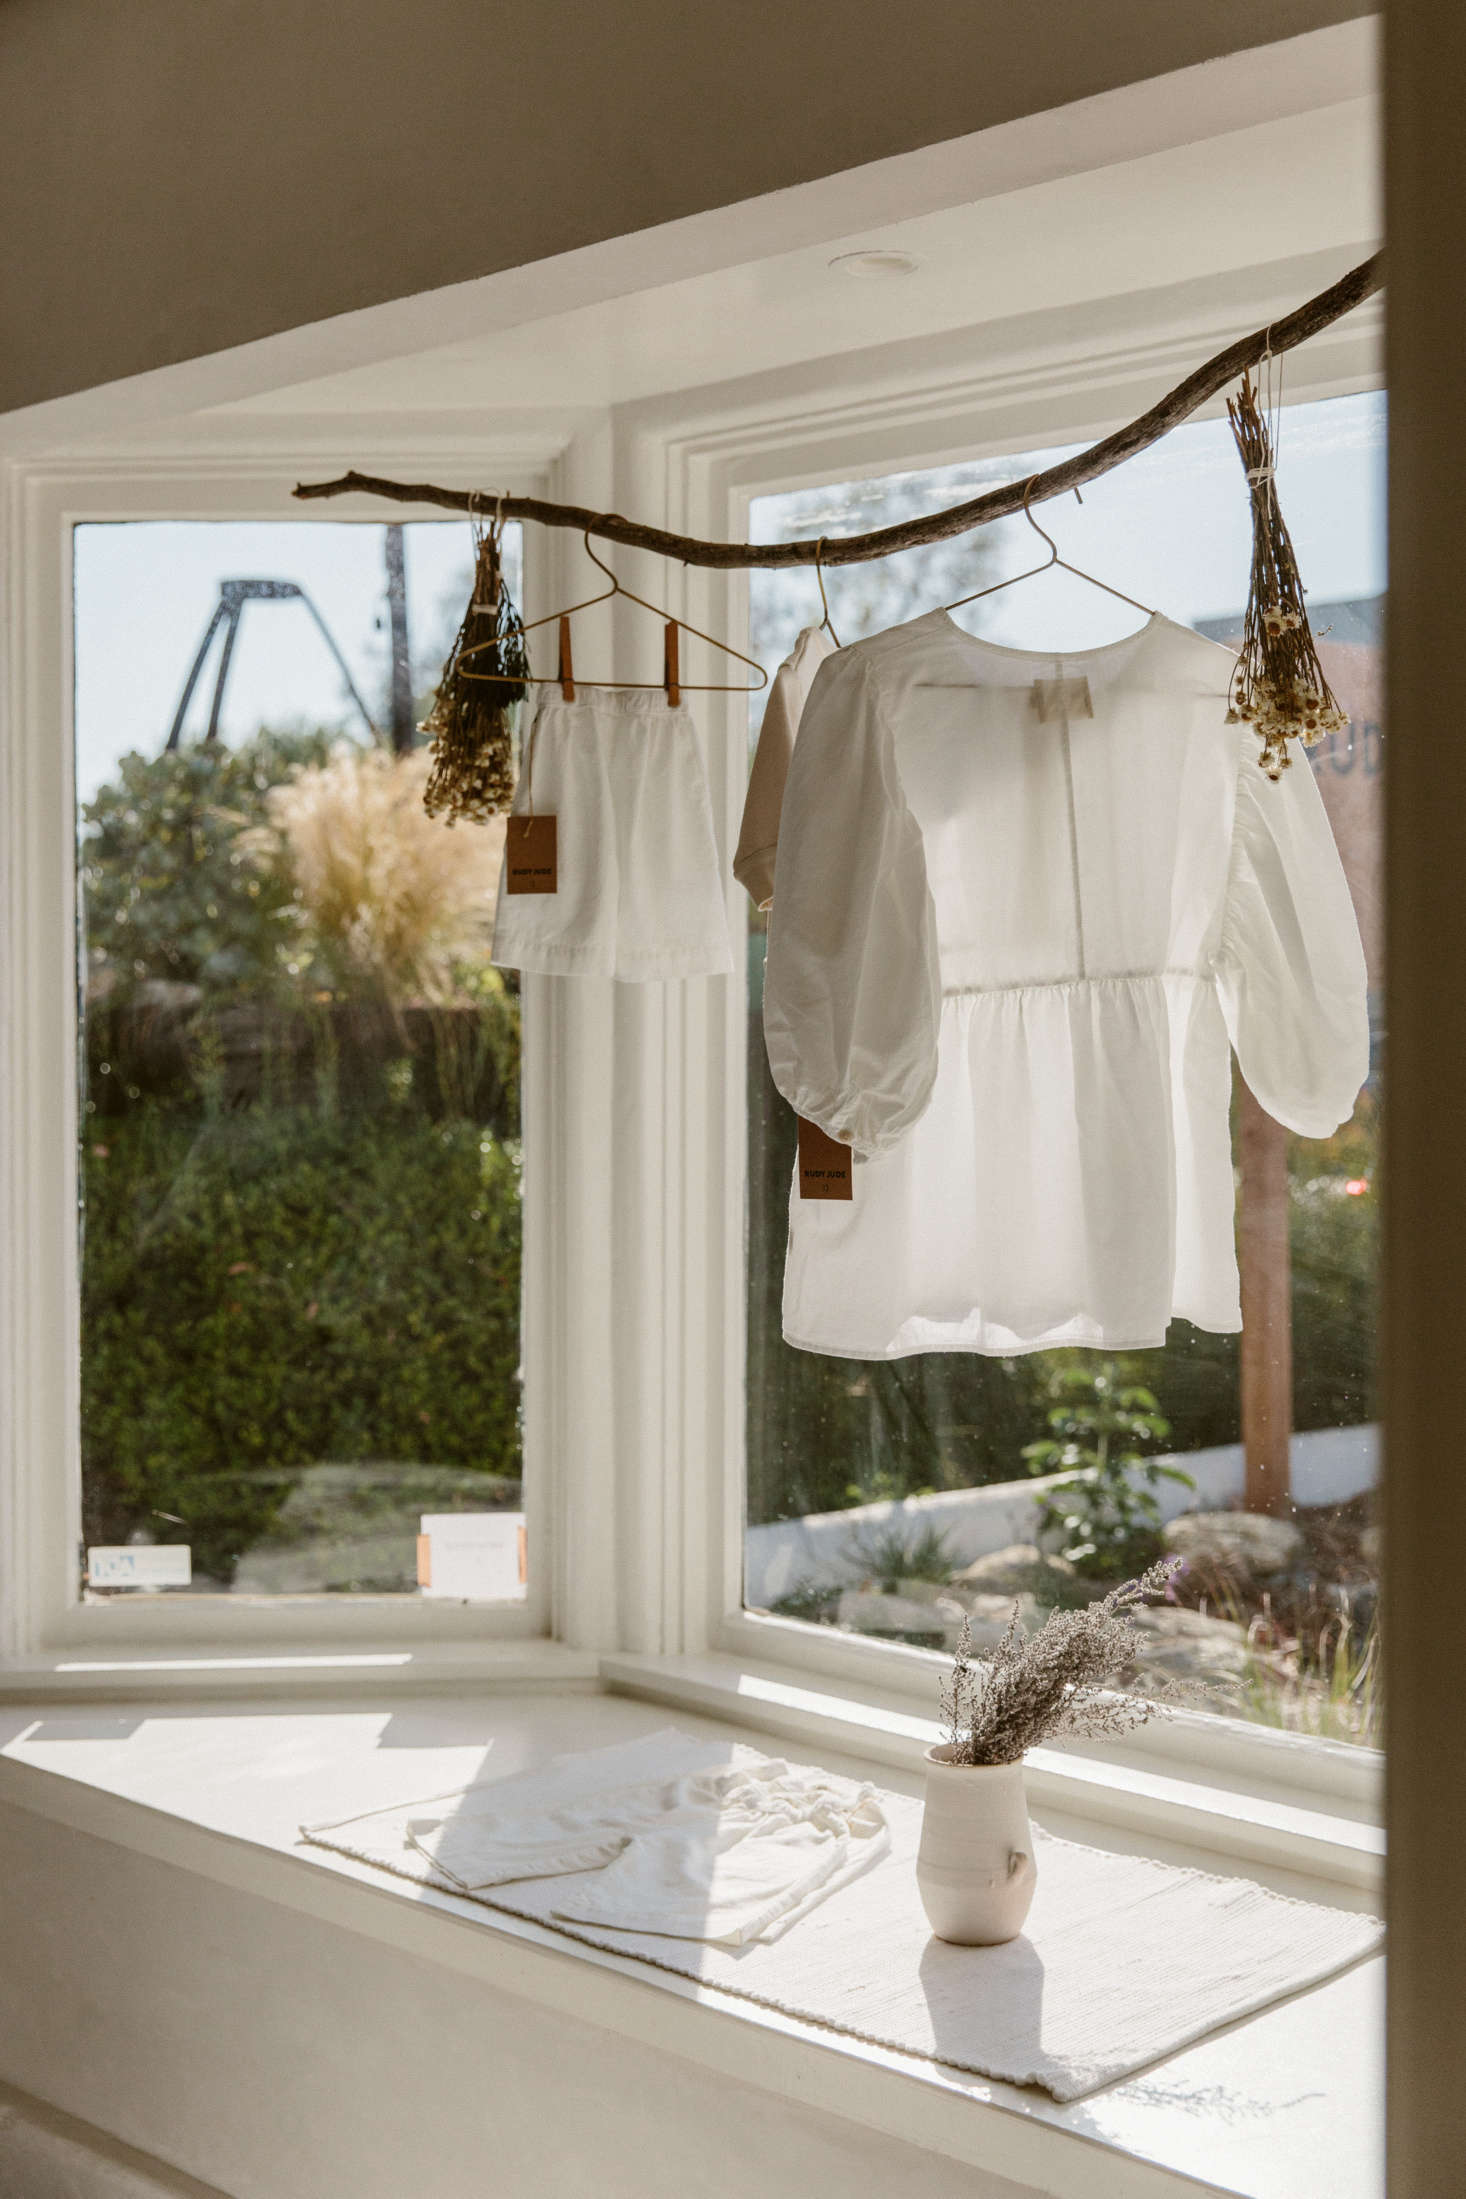 In the front window, a curved branch displays a Rudy Jude Day Blouse—and bundles of dried flowers. (For more ideas like this, seeThe New Rusticity: 11 DIY Ways to Use Branches Indoors.)